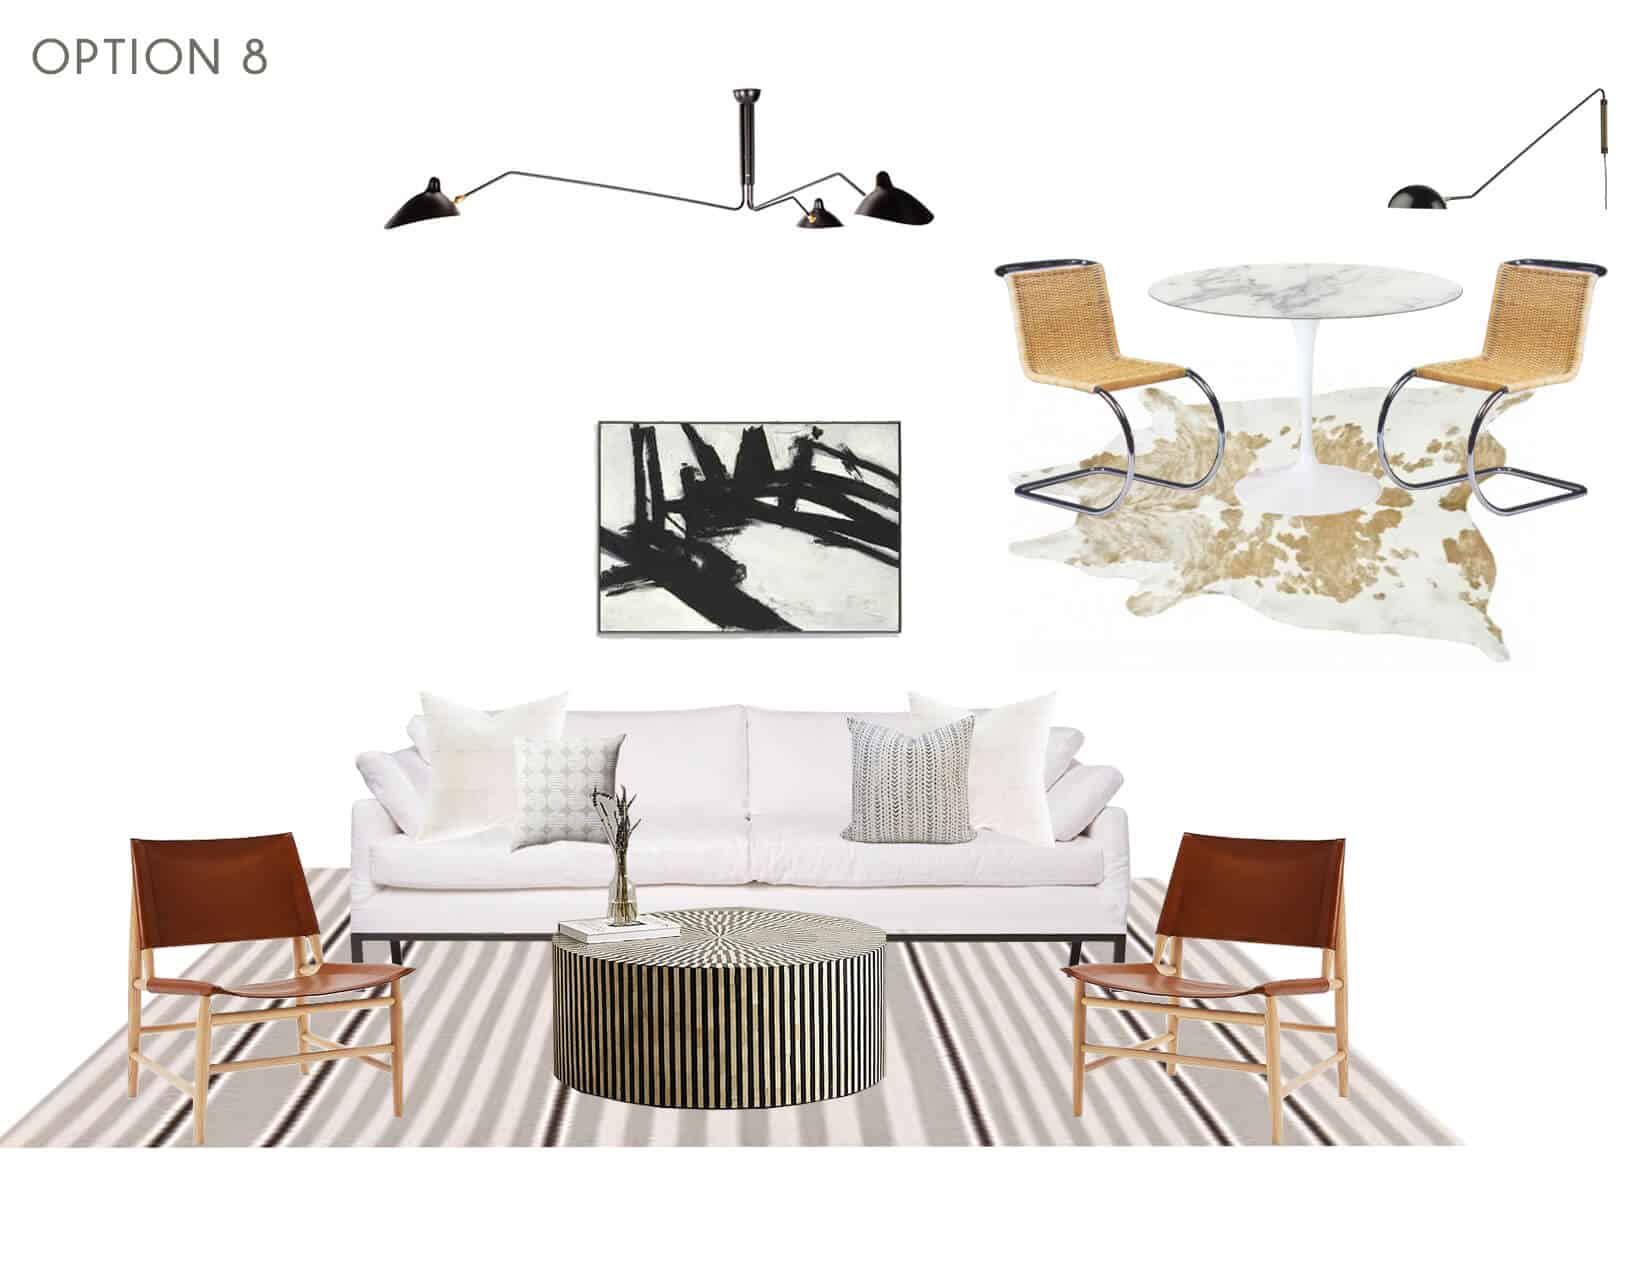 Emily Henderson_Full Design_Sunroom_Introduction_Moodboard_Option 8